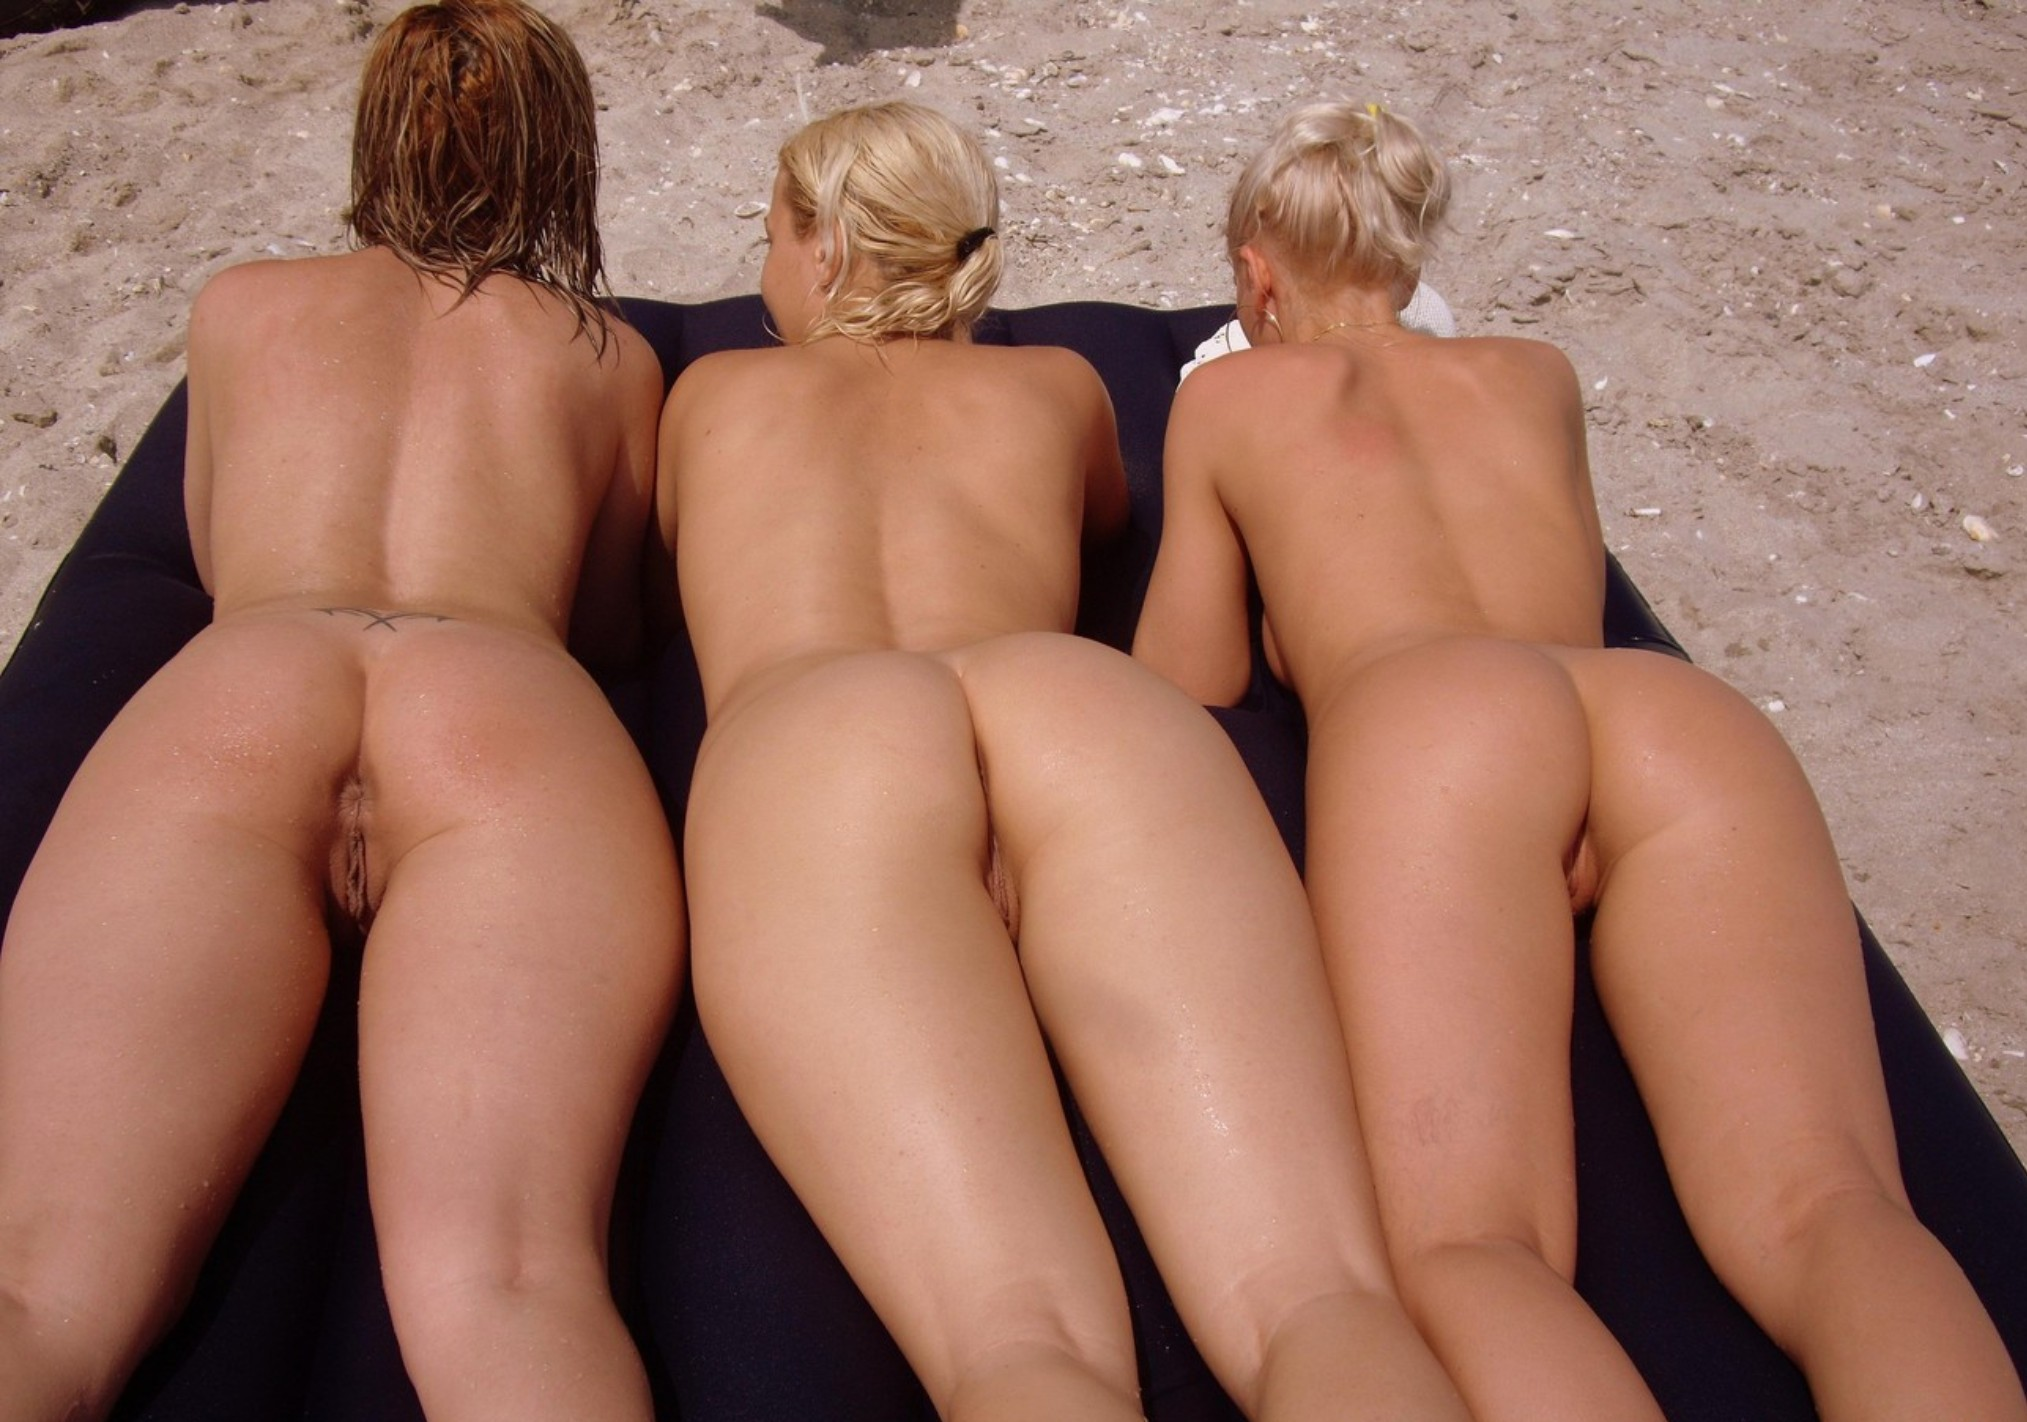 Three stunning girls showing their cracks